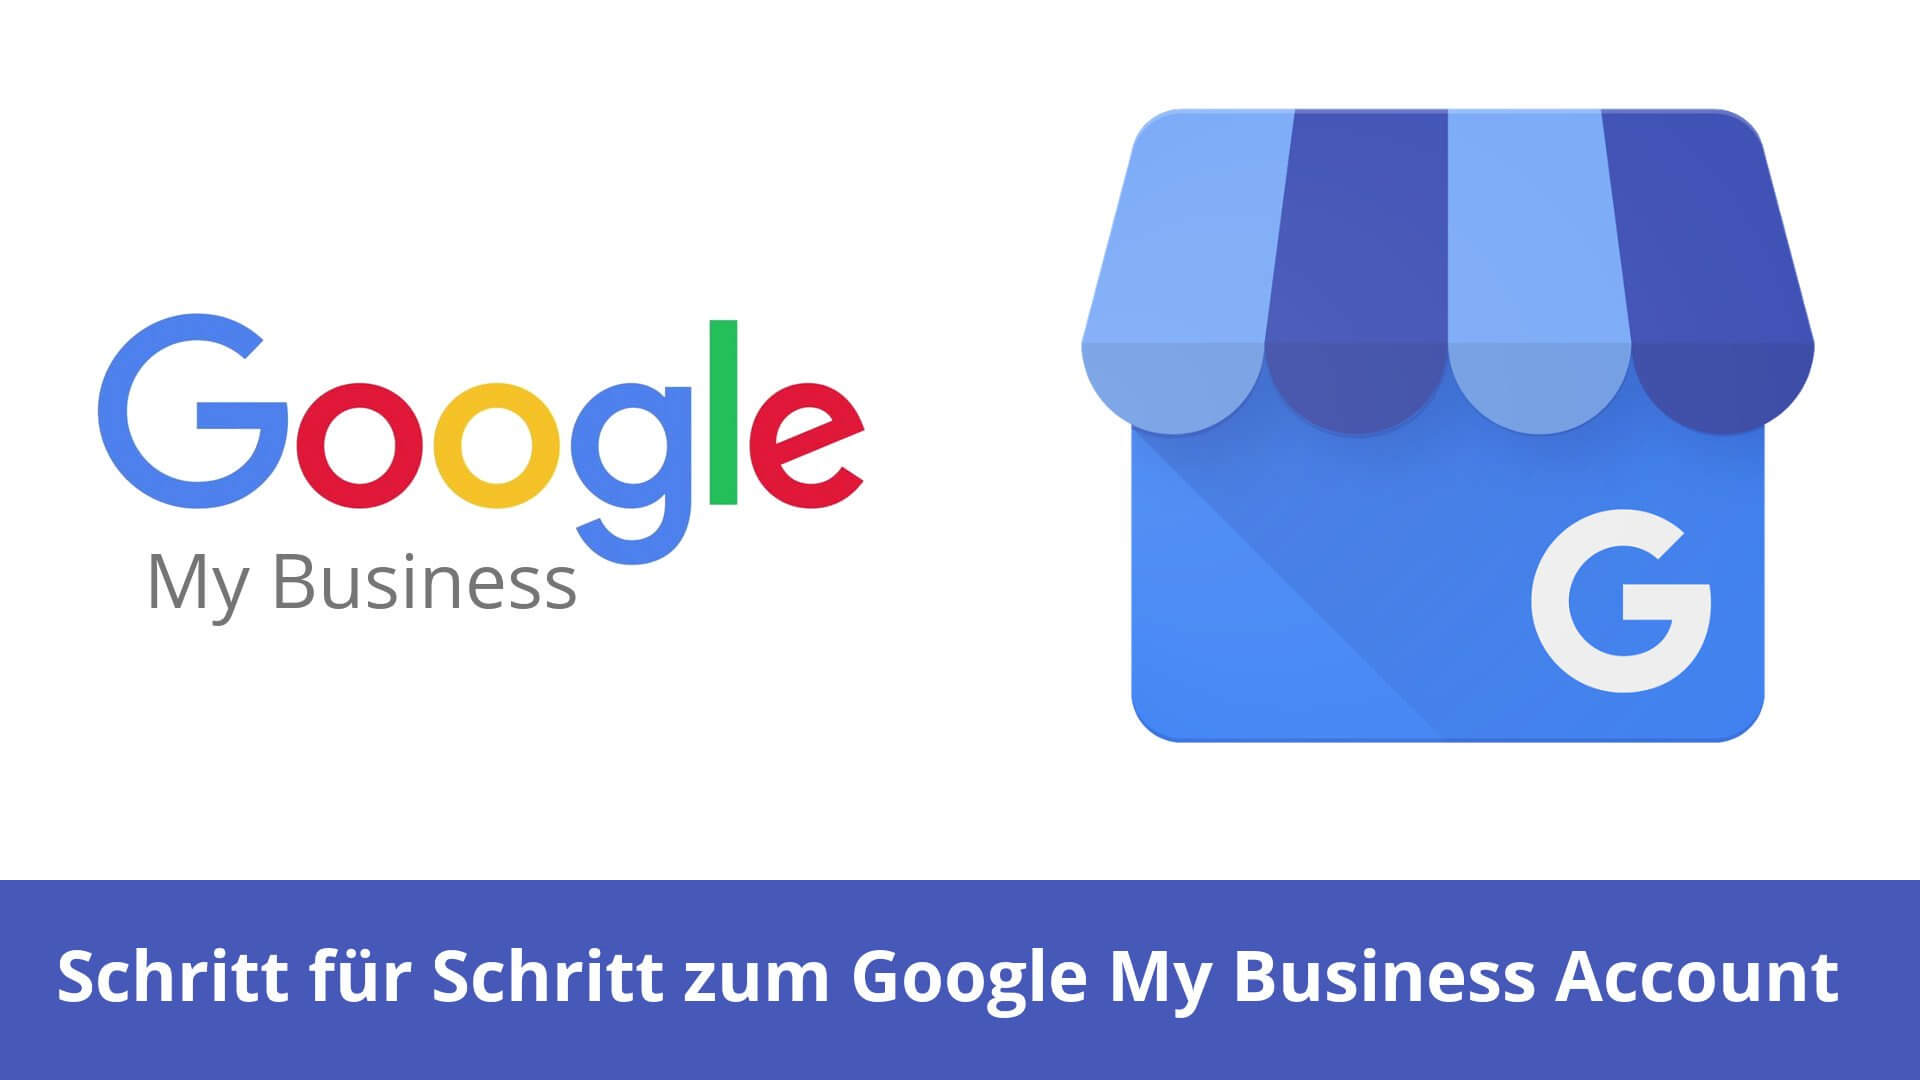 Das icon des Google MyBusiness Services